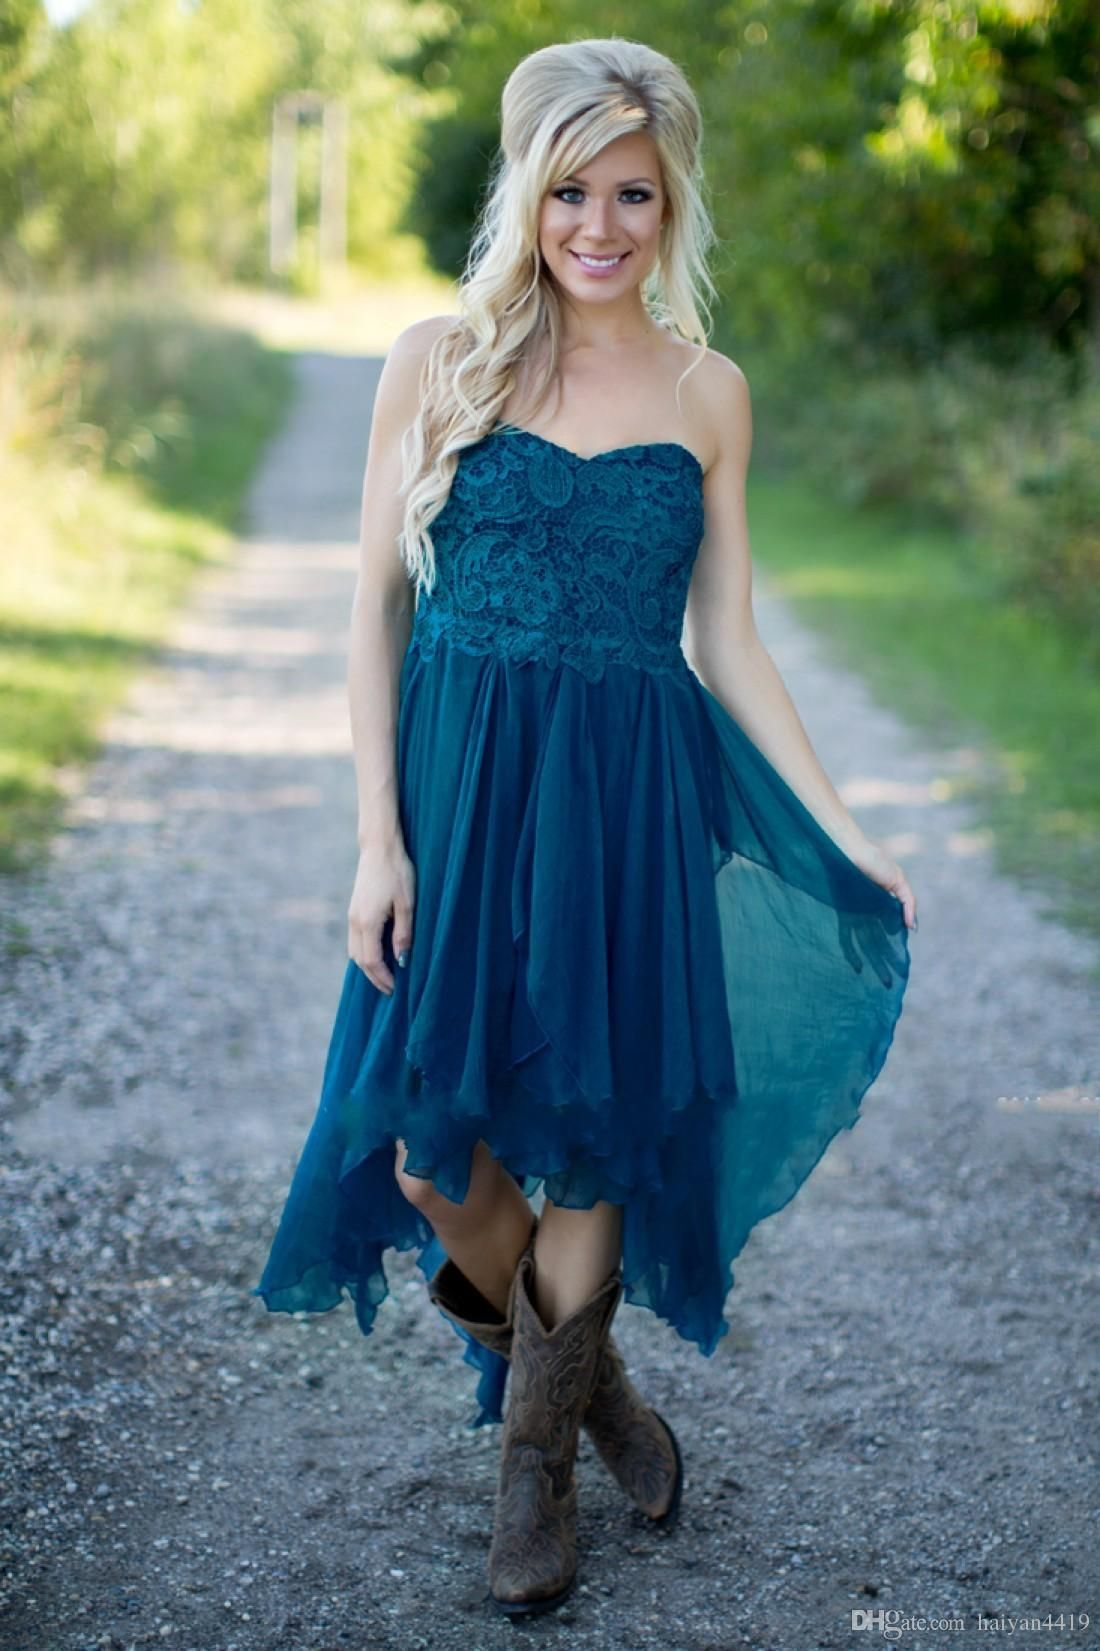 Cheap country bridesmaid dresses 2017 short hot cheap for wedding cheap country bridesmaid dresses 2017 short hot cheap for wedding teal chiffon beach lace high low ruffles party maid honor gowns under 100 as low as 8945 ombrellifo Gallery